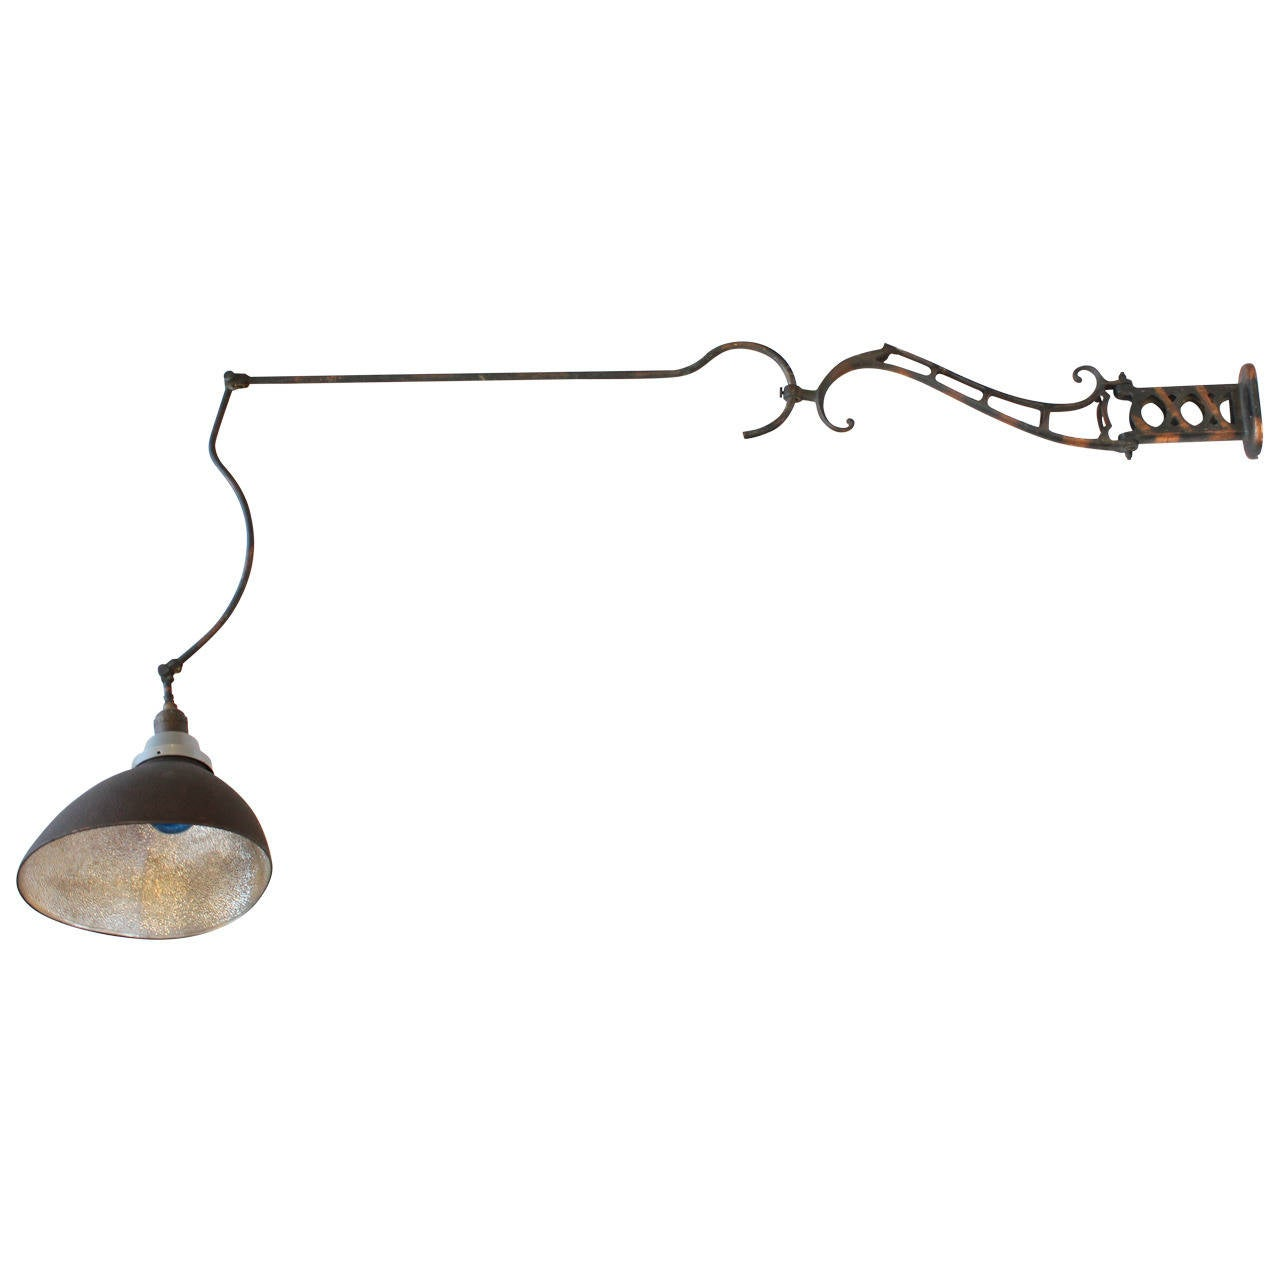 American gooseneck light fixture by abolite lighting at 1stdibs 1920s american articulated wall lamp by faries fixtures arubaitofo Gallery